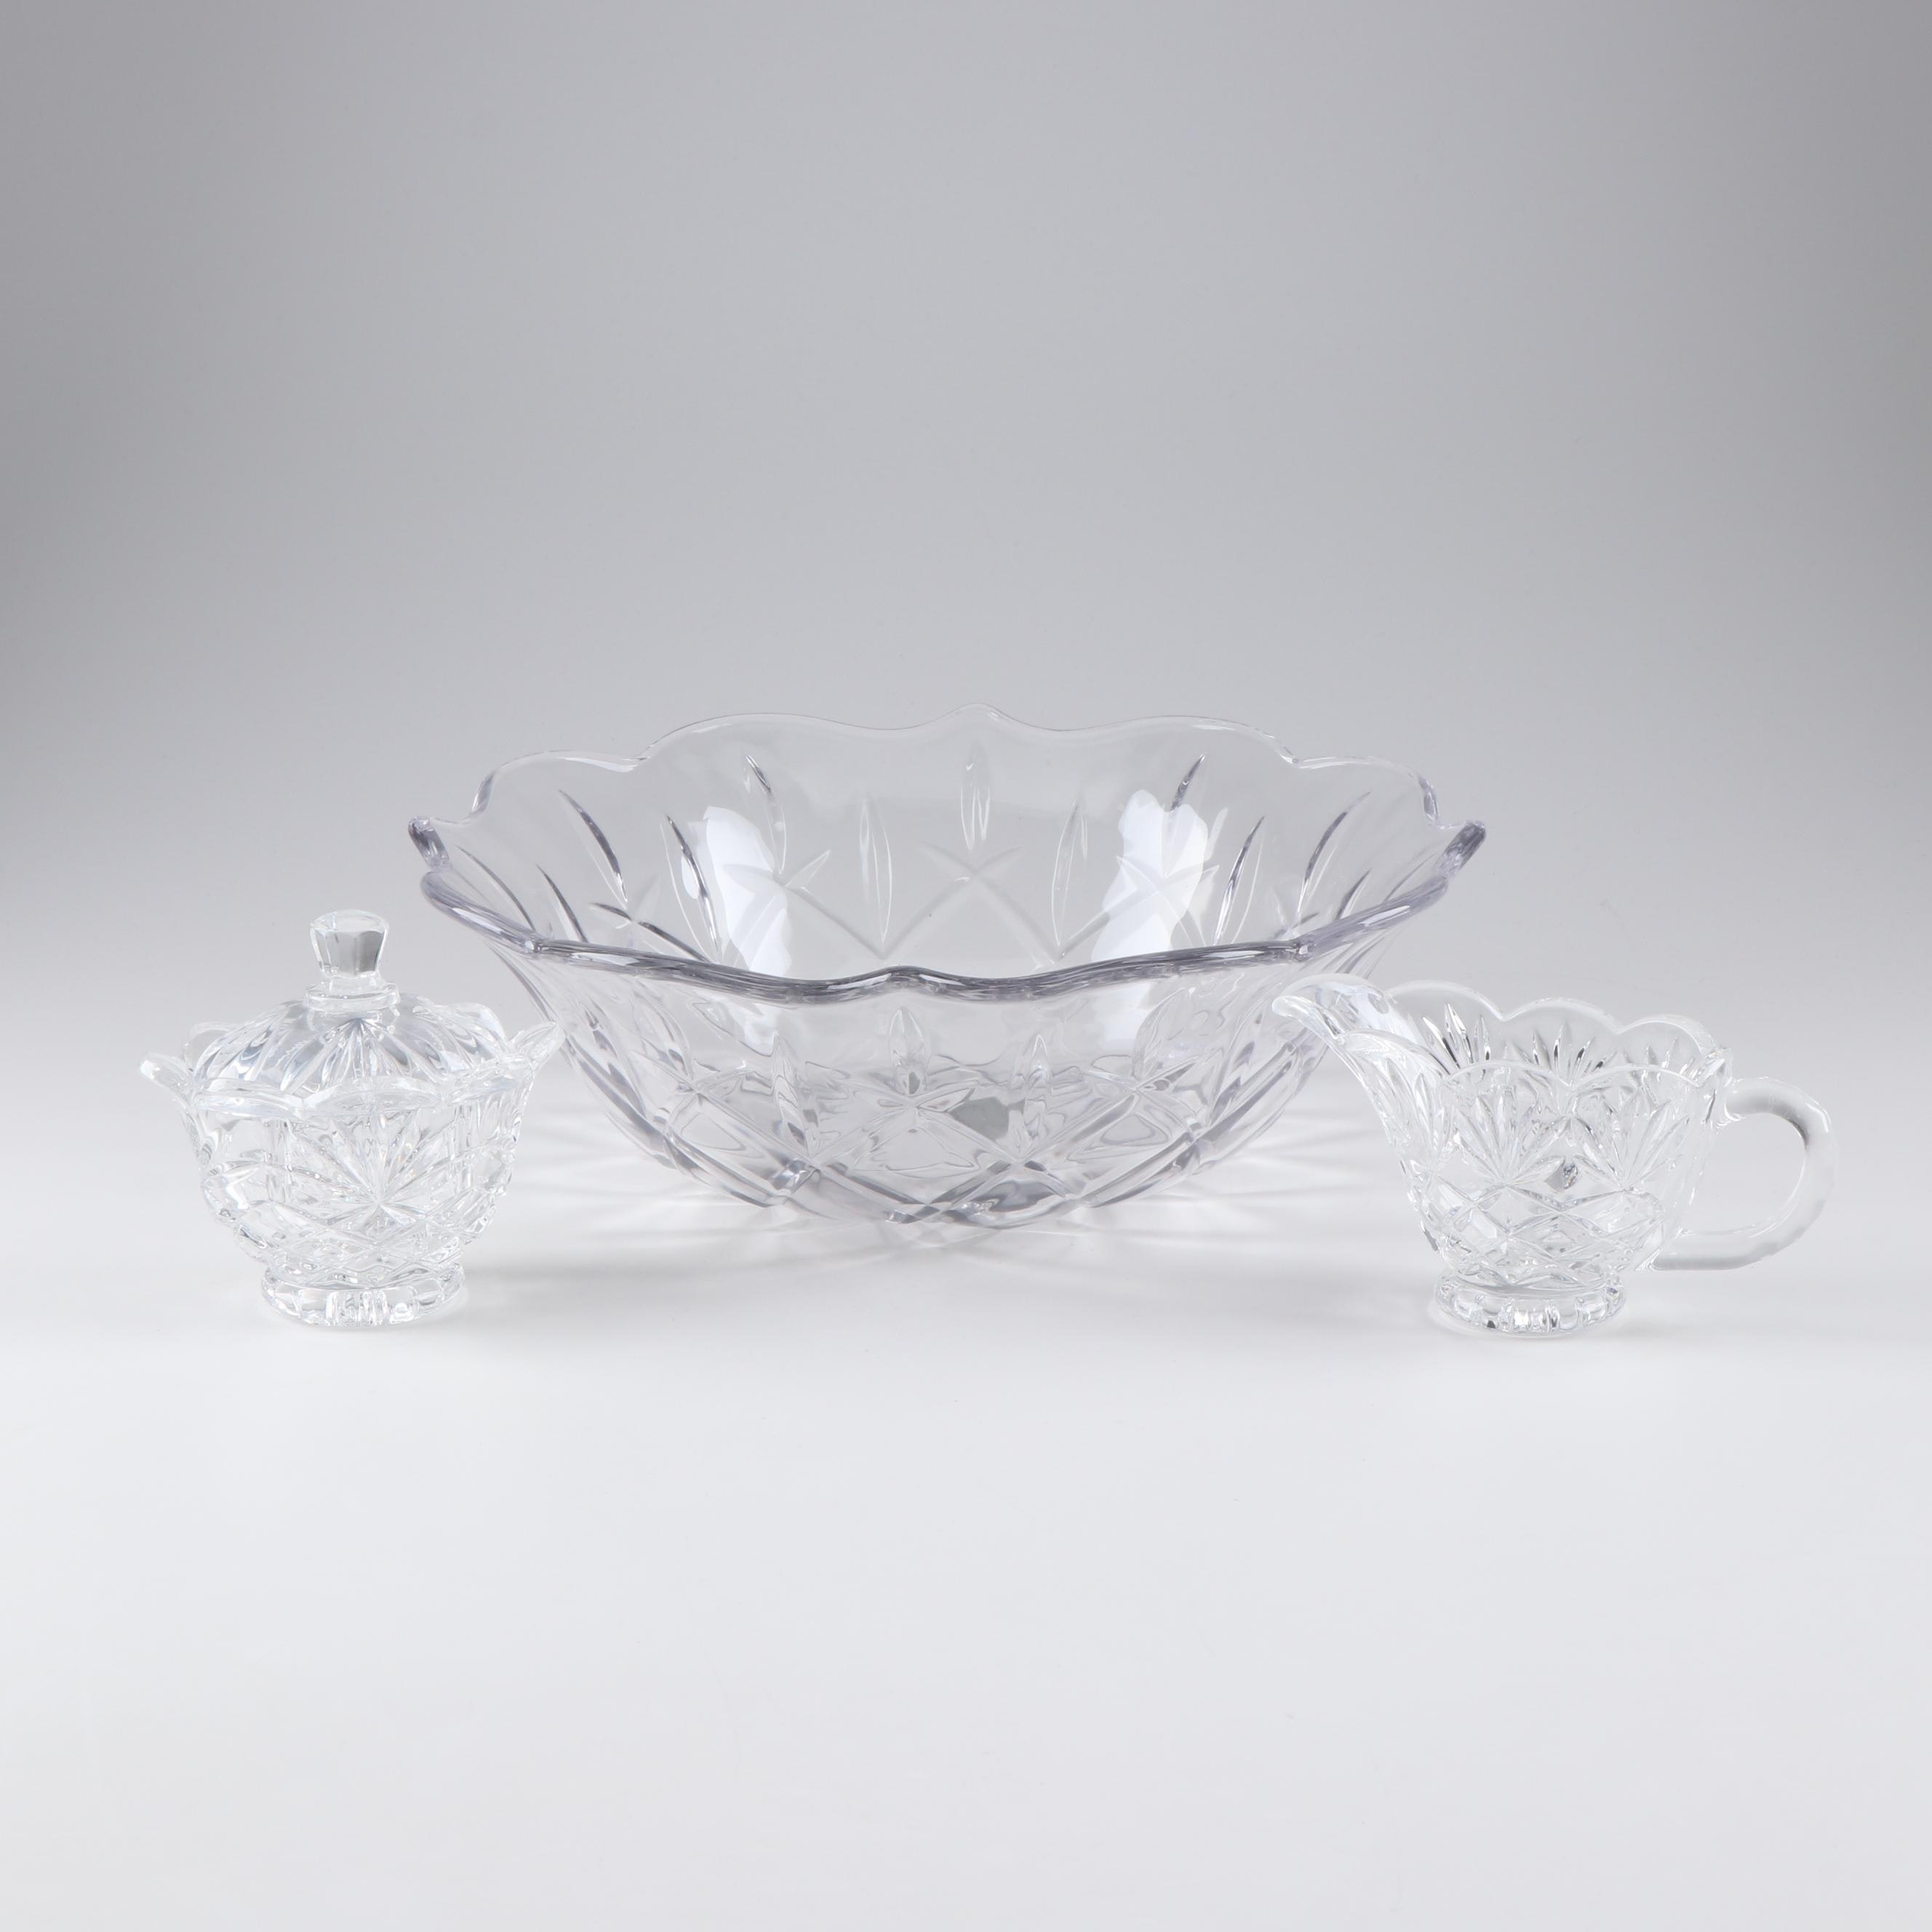 Contemporary Crystal Bowl with Cream and Sugar Including Godinger